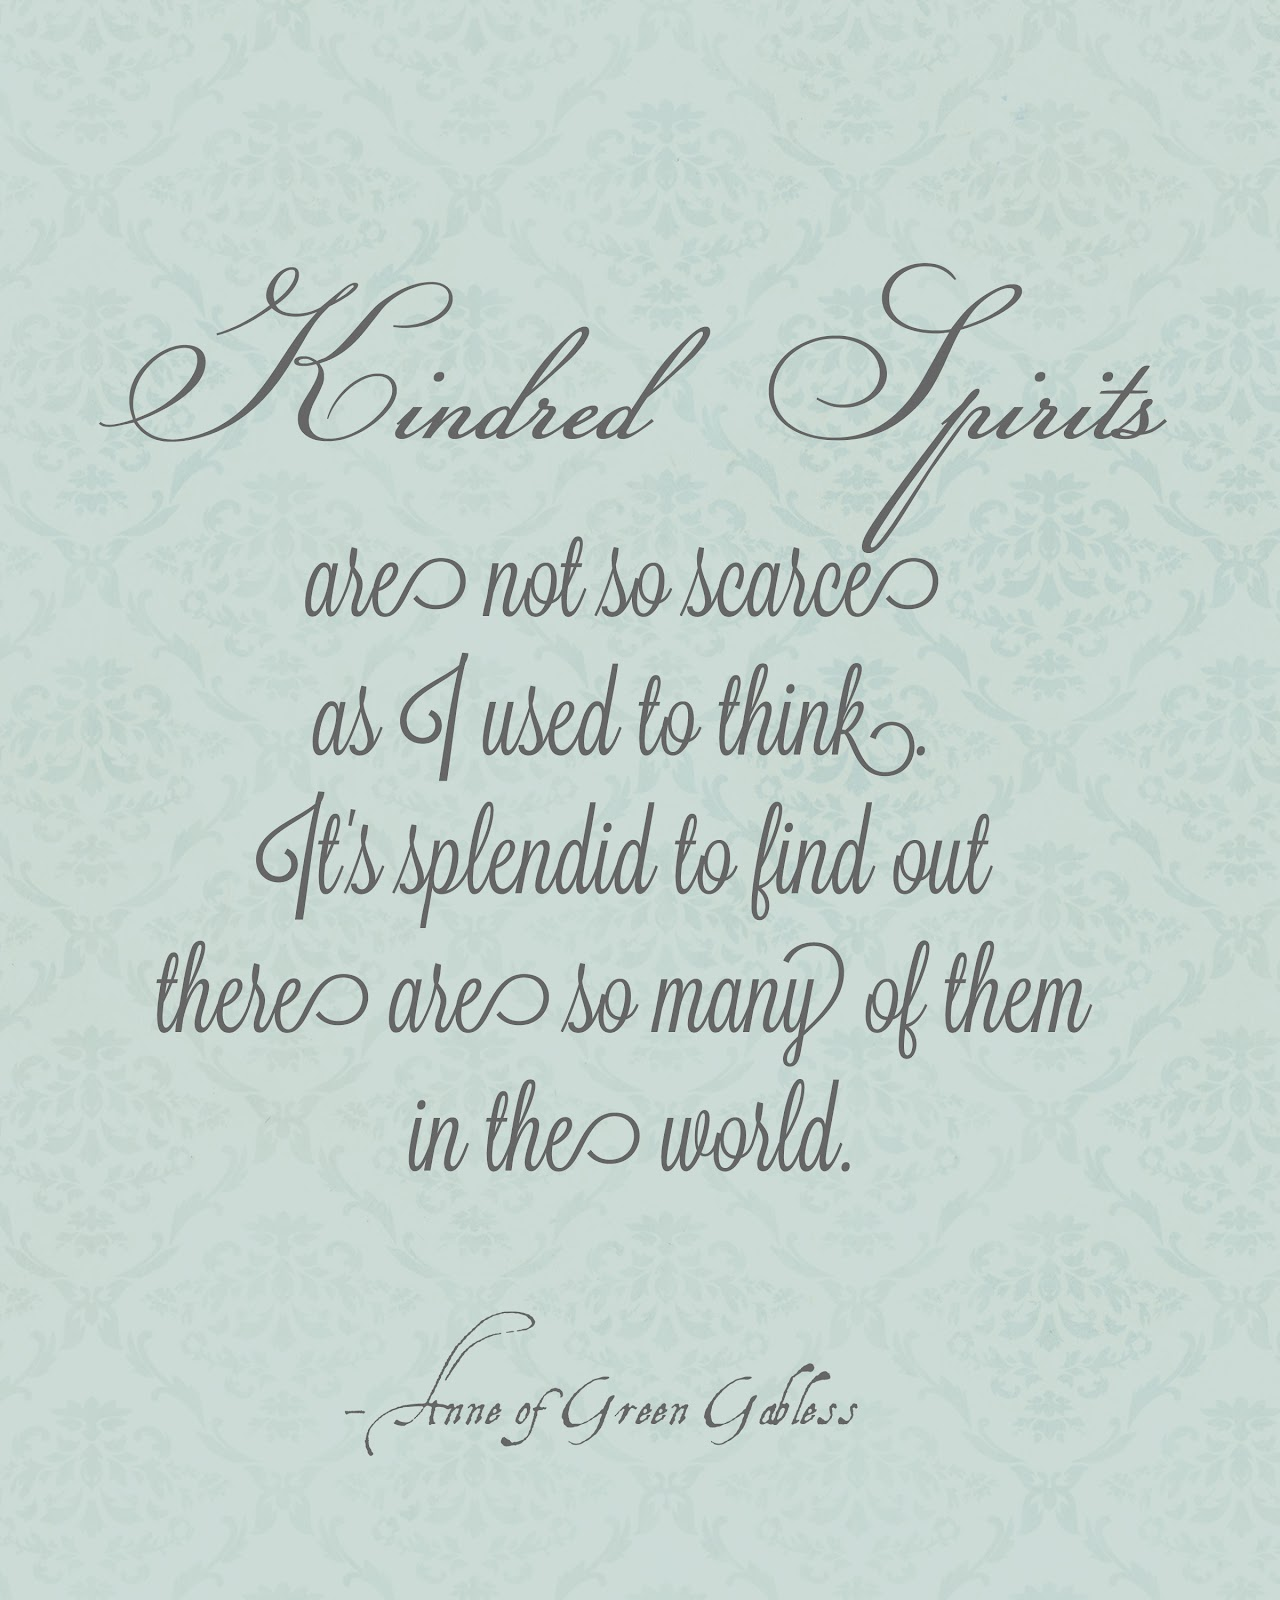 Quotes From Anne Of Green Gables About Friendship : Quotes about kindred spirit anne green gables quotesgram